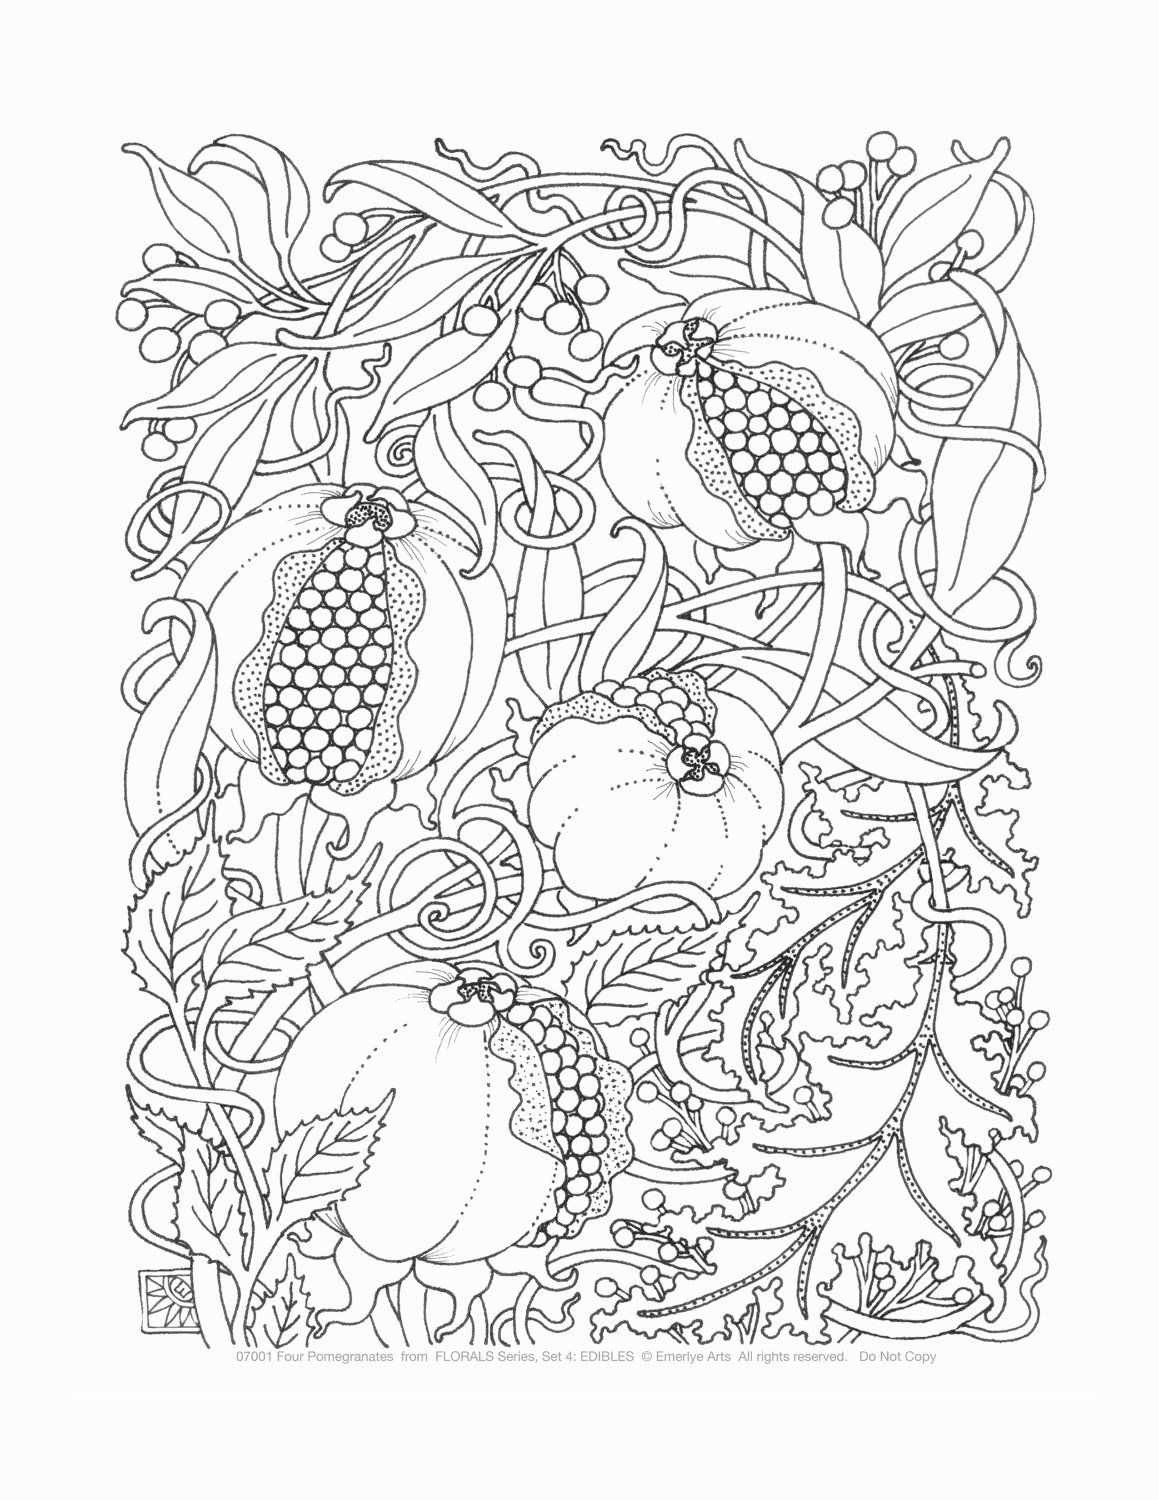 the coloring pages for adults simple coloring book that you can